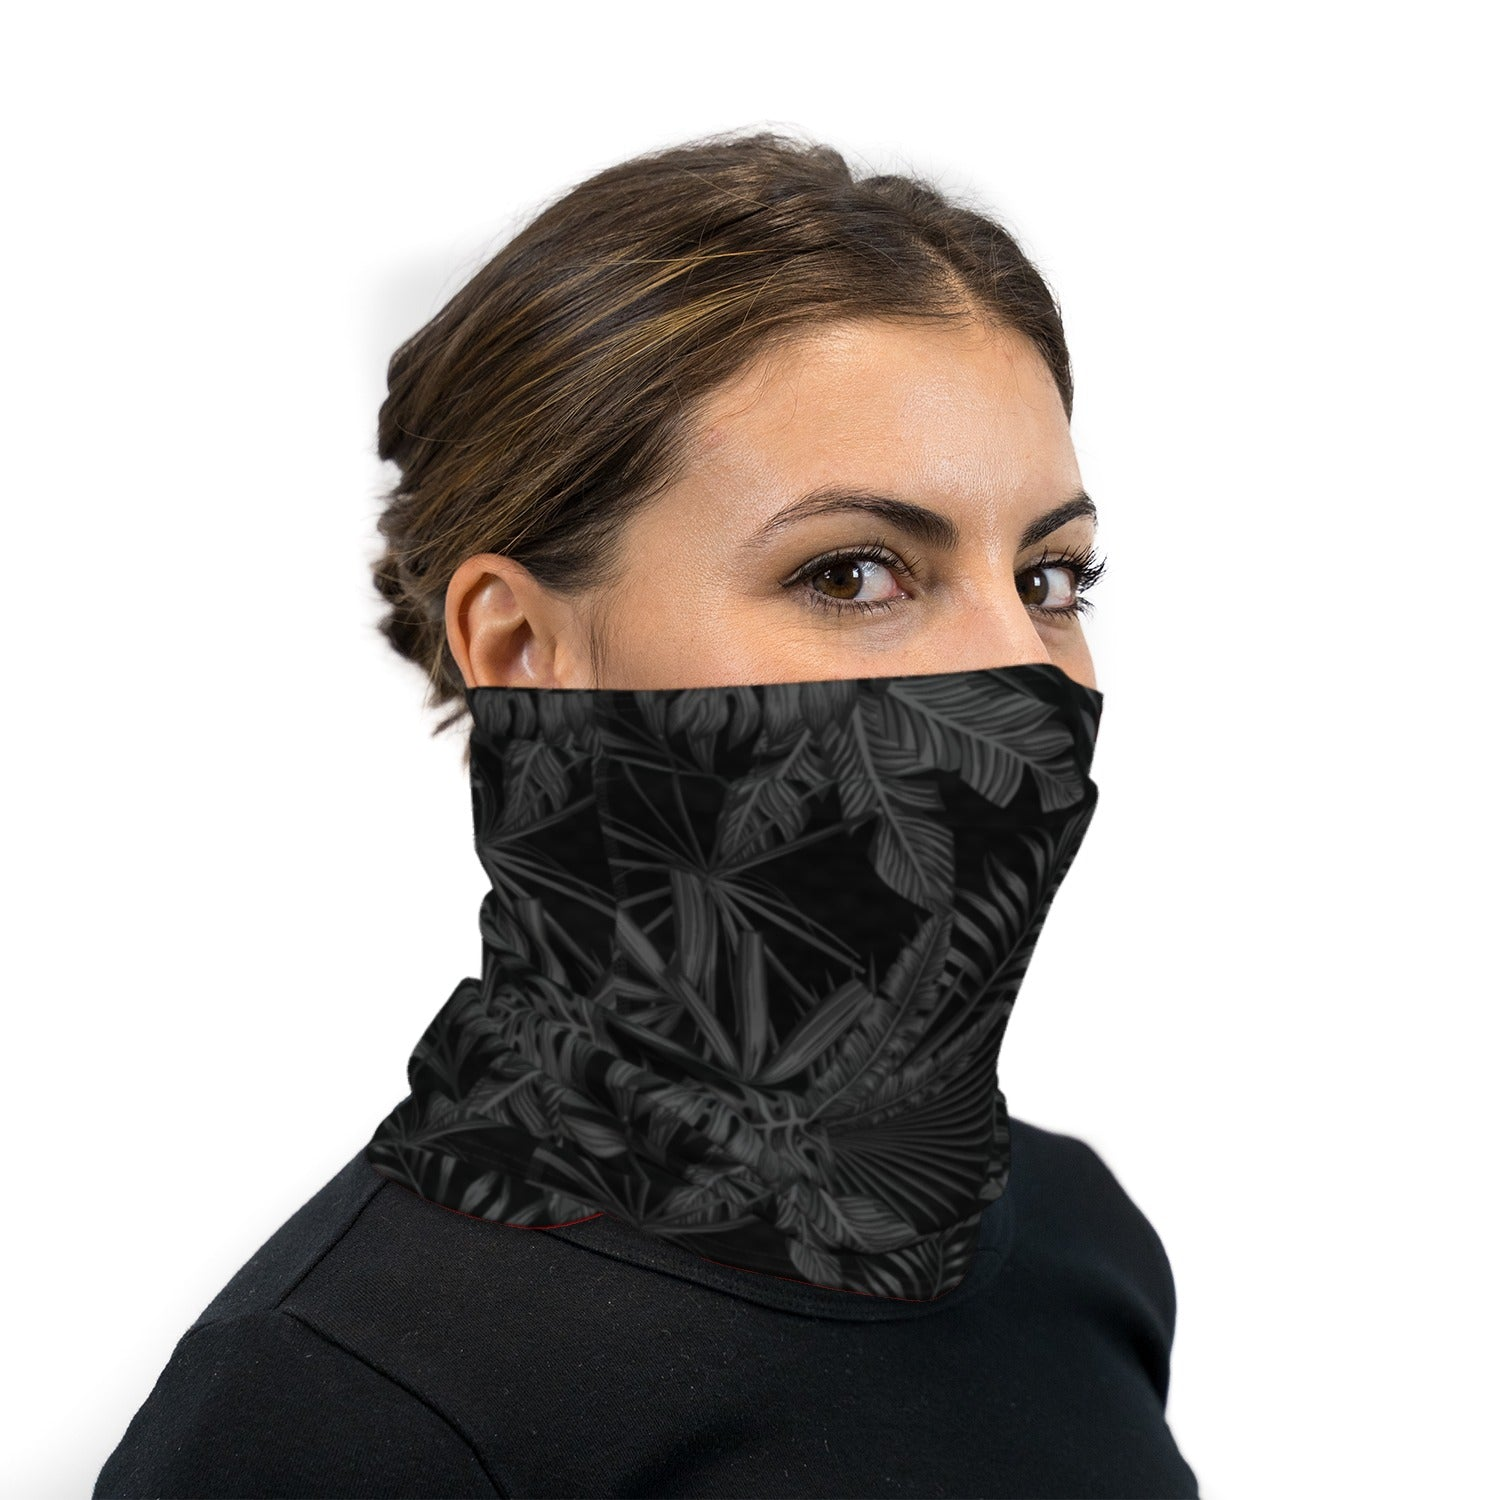 Gothic Black Hawaiian Neck Gaiter Face Mask